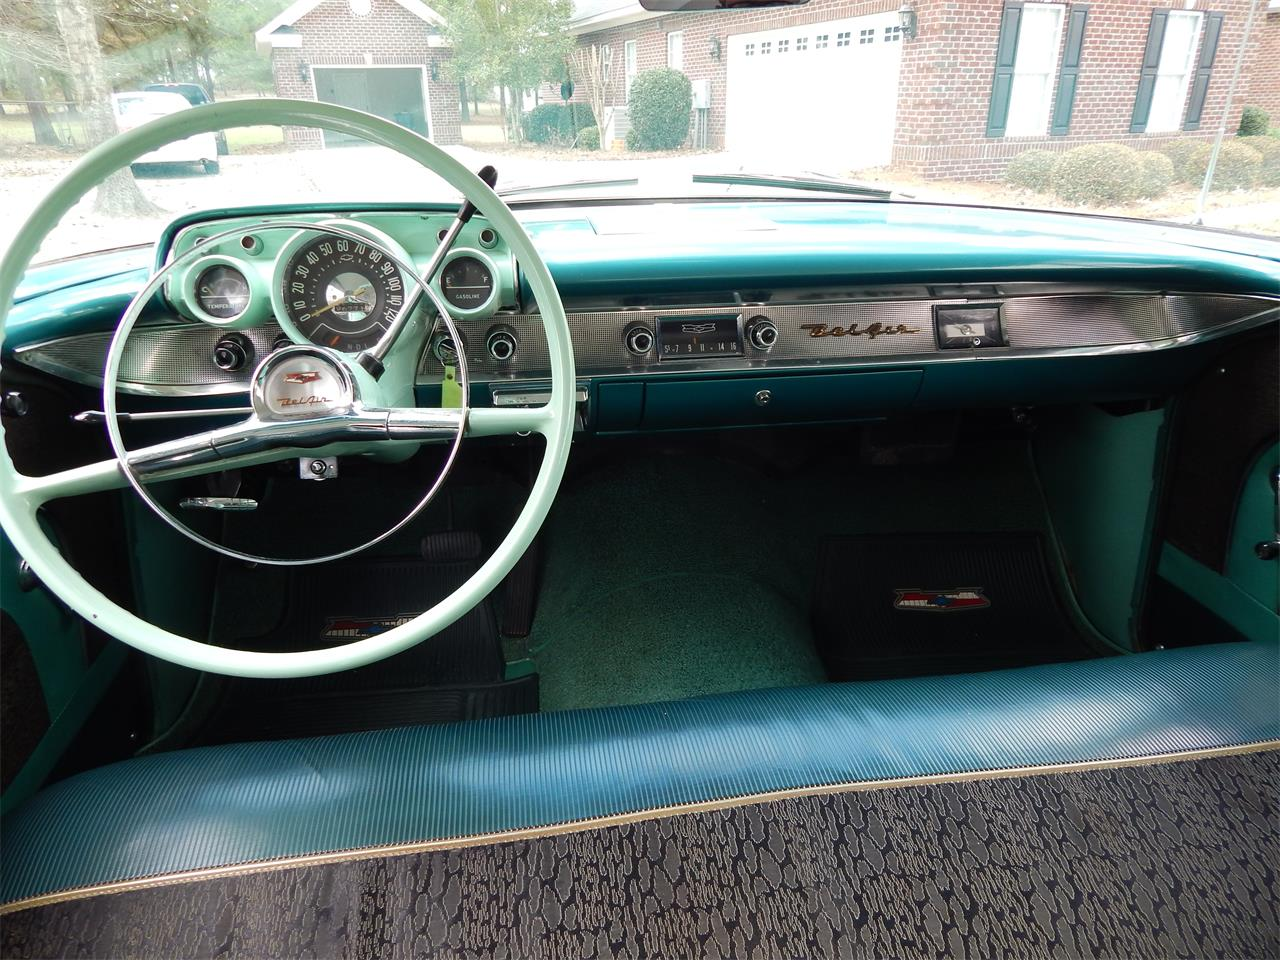 1957 Chevrolet Bel Air for sale in Online, Online Auction – photo 19